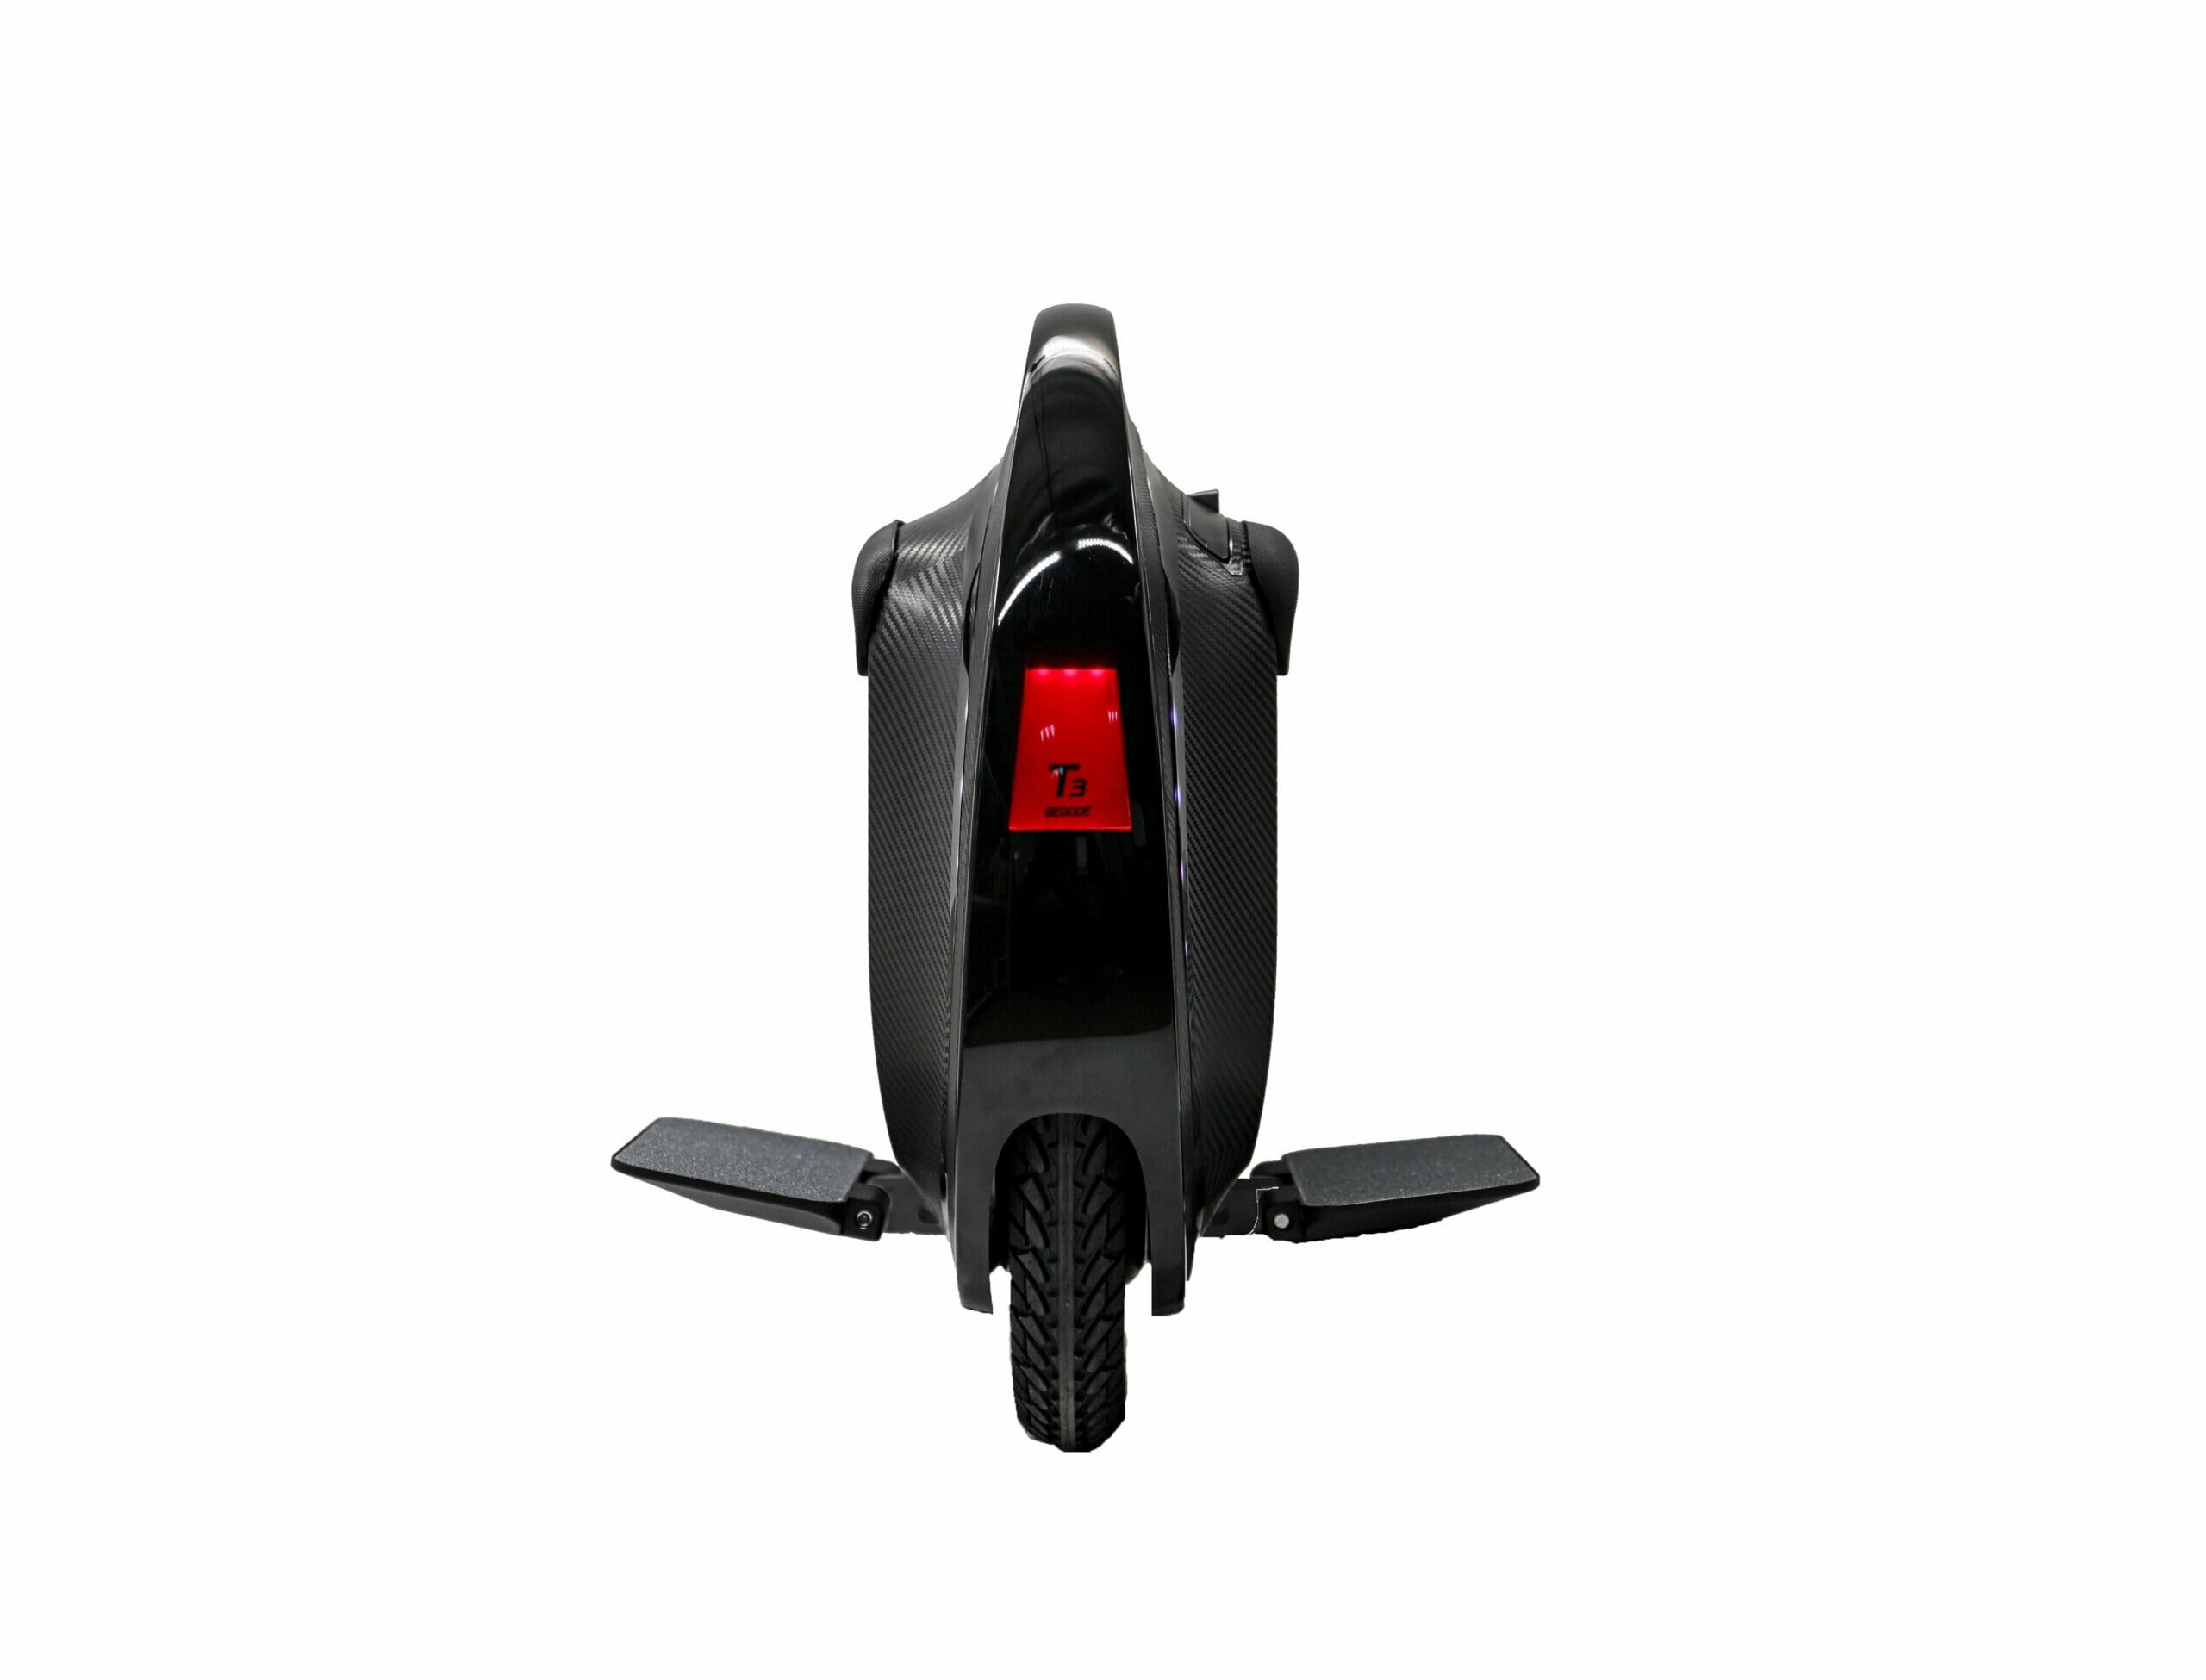 Begode Tesla V3 electric unicycle back light picture